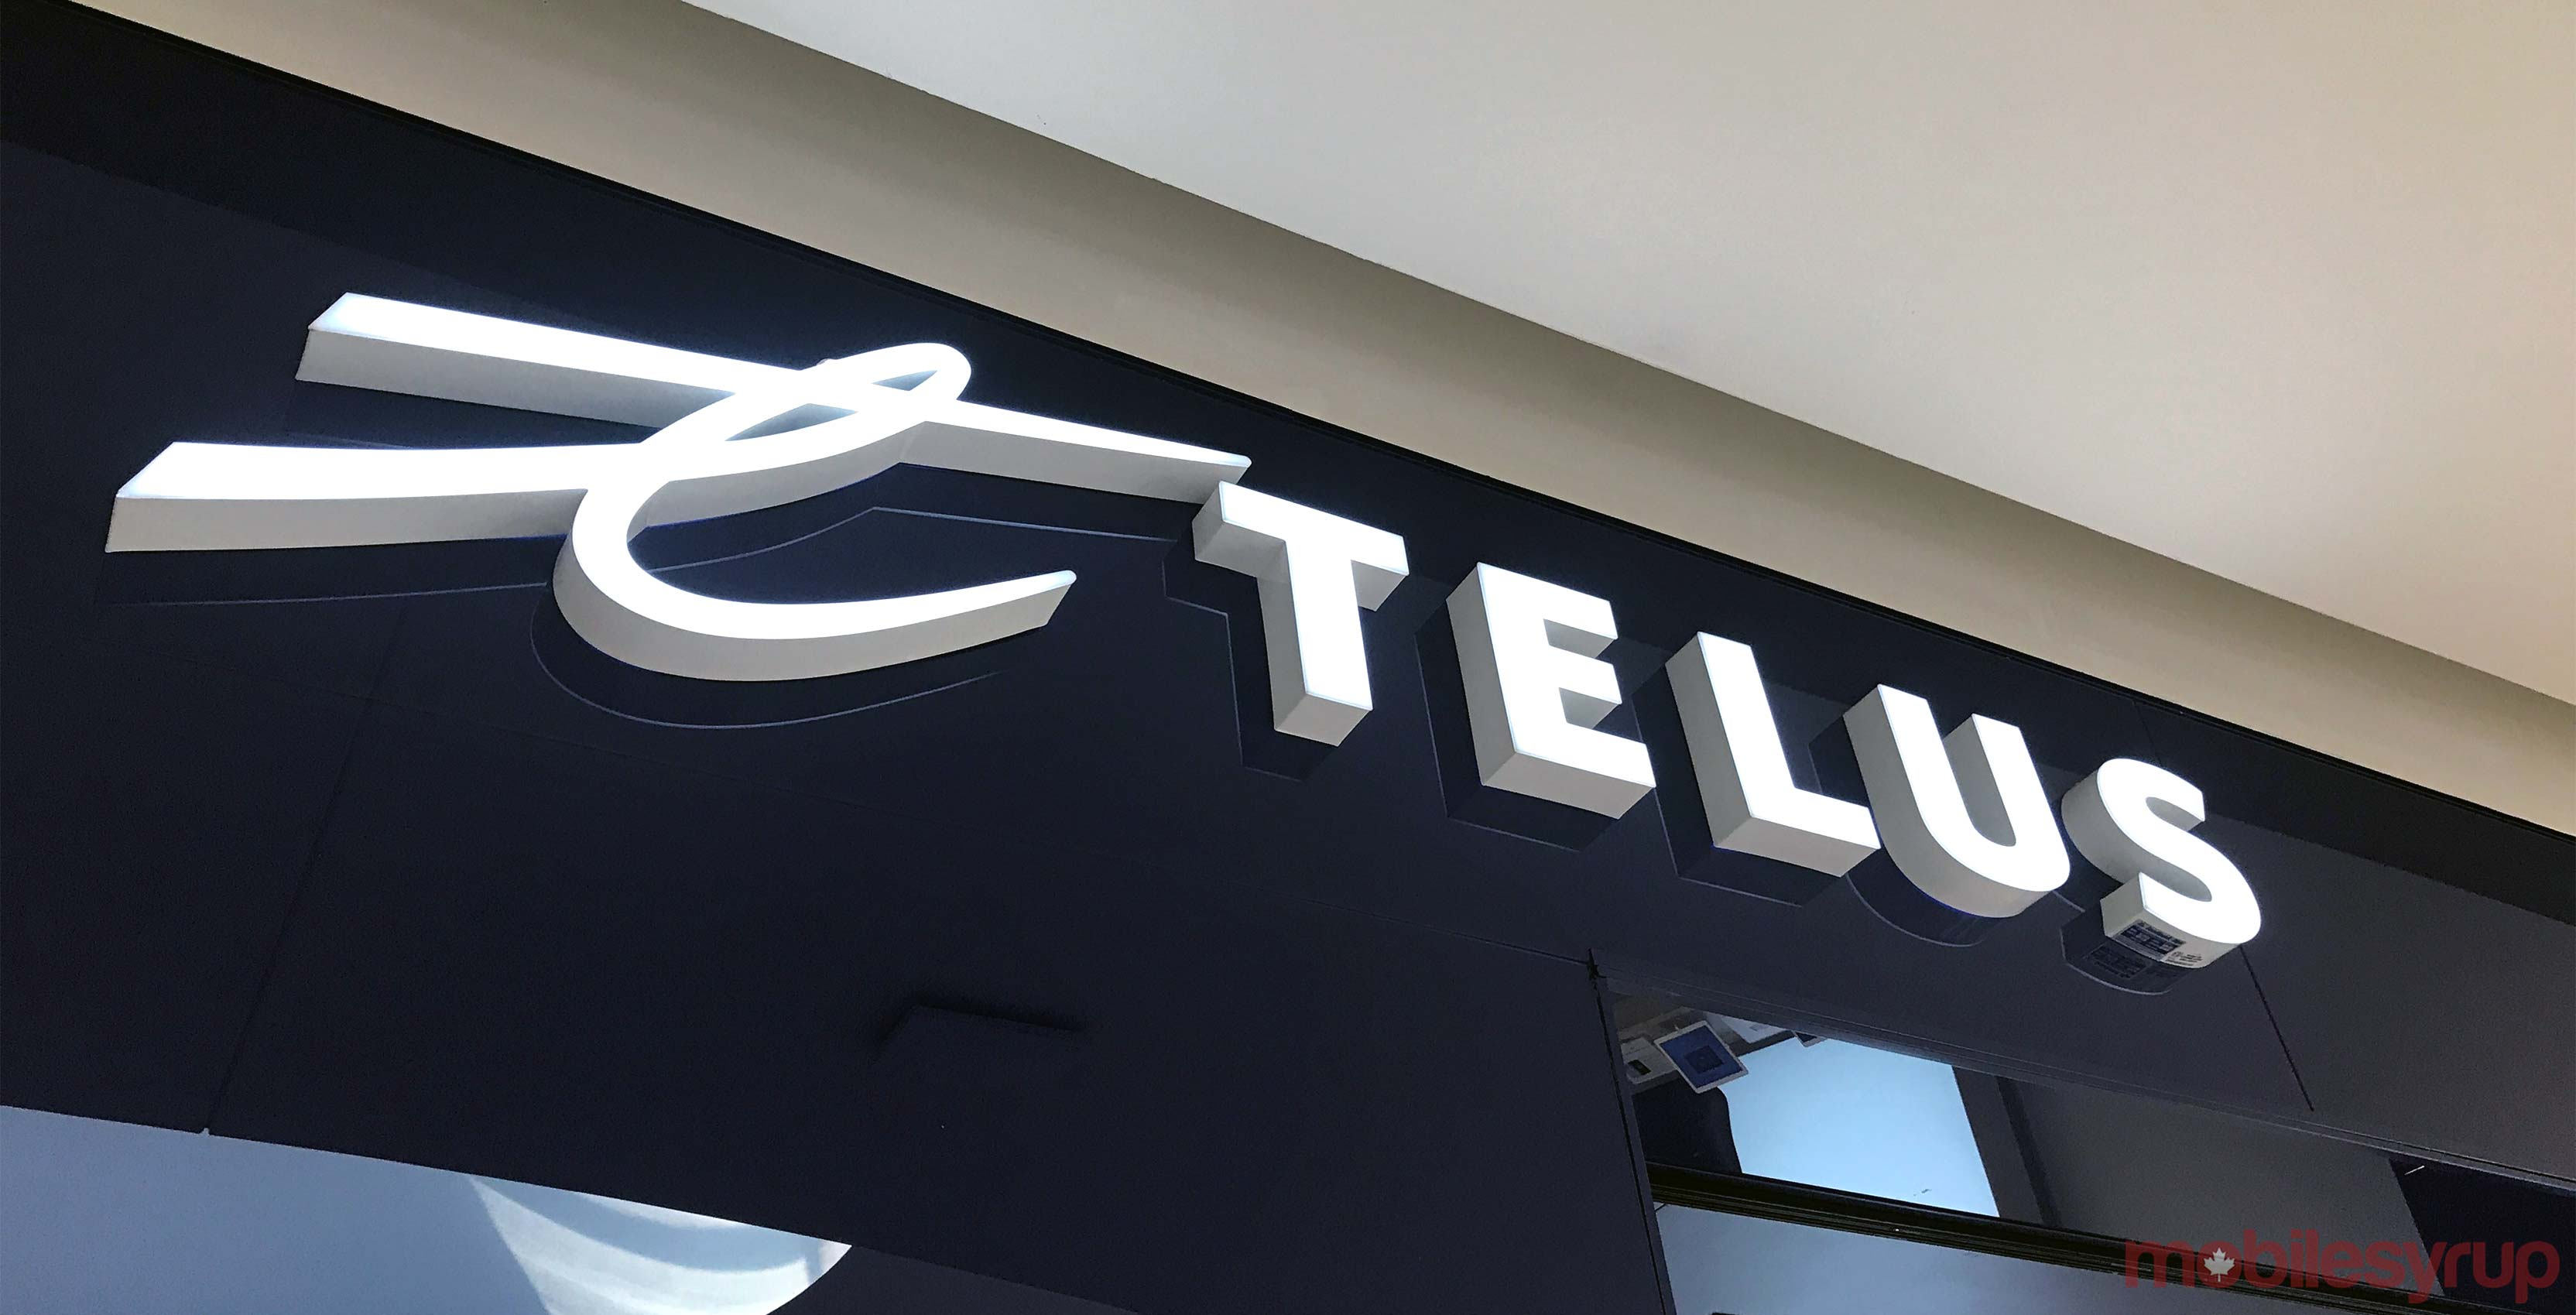 Telus on logo